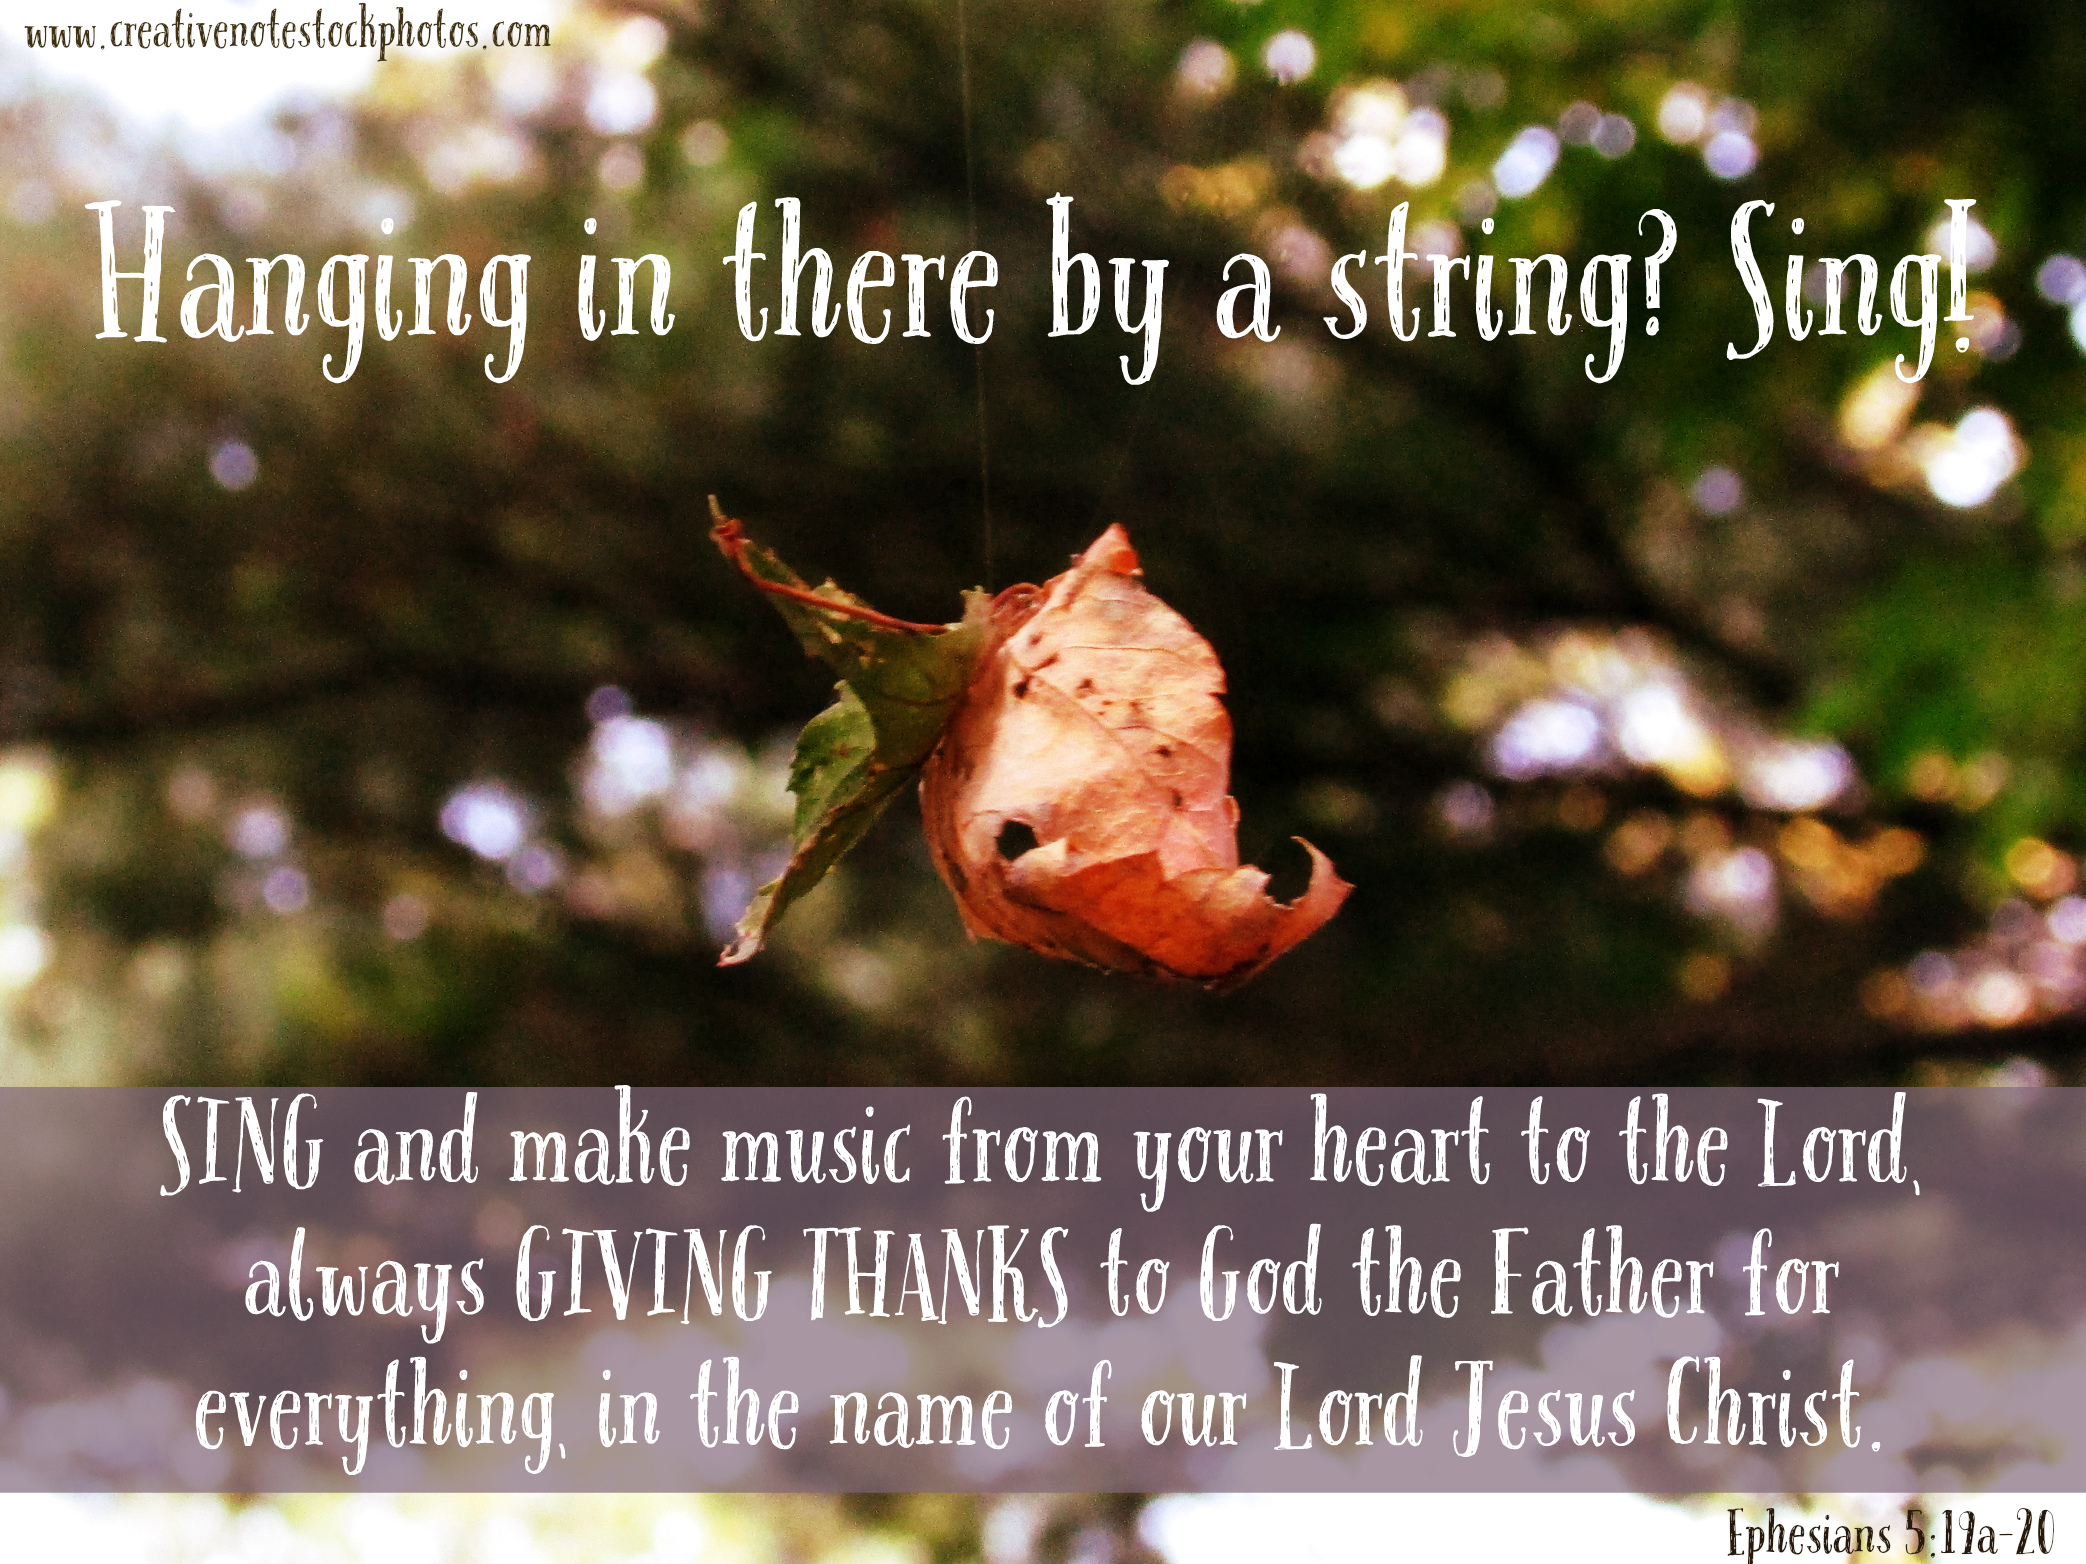 hanging in there by a string? sing Ephesians 5:19a-20 sing and make music, encouragement for cancer patients,